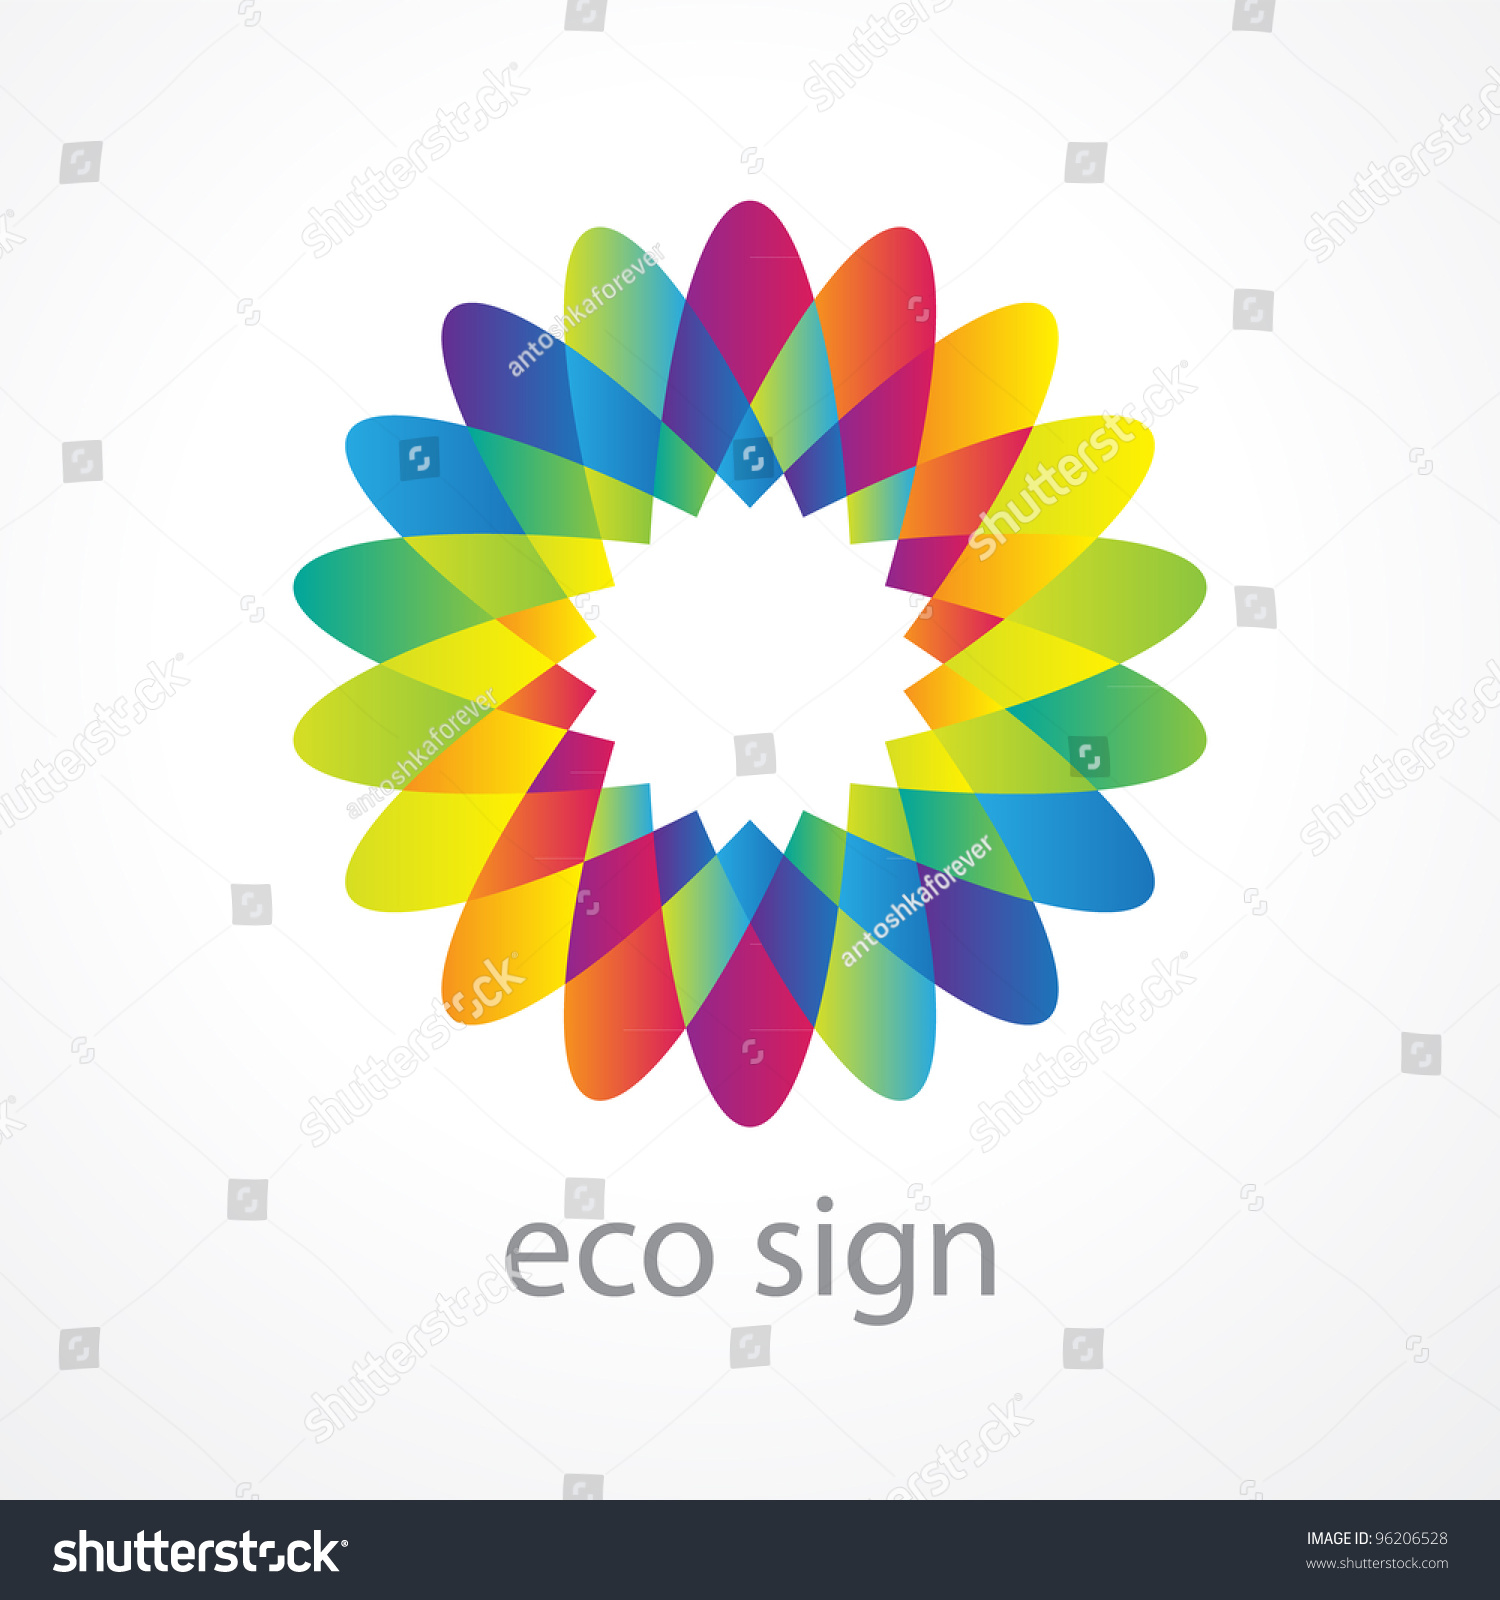 Sign Environment Stylized Flower Multicolored Petals Stock Photo